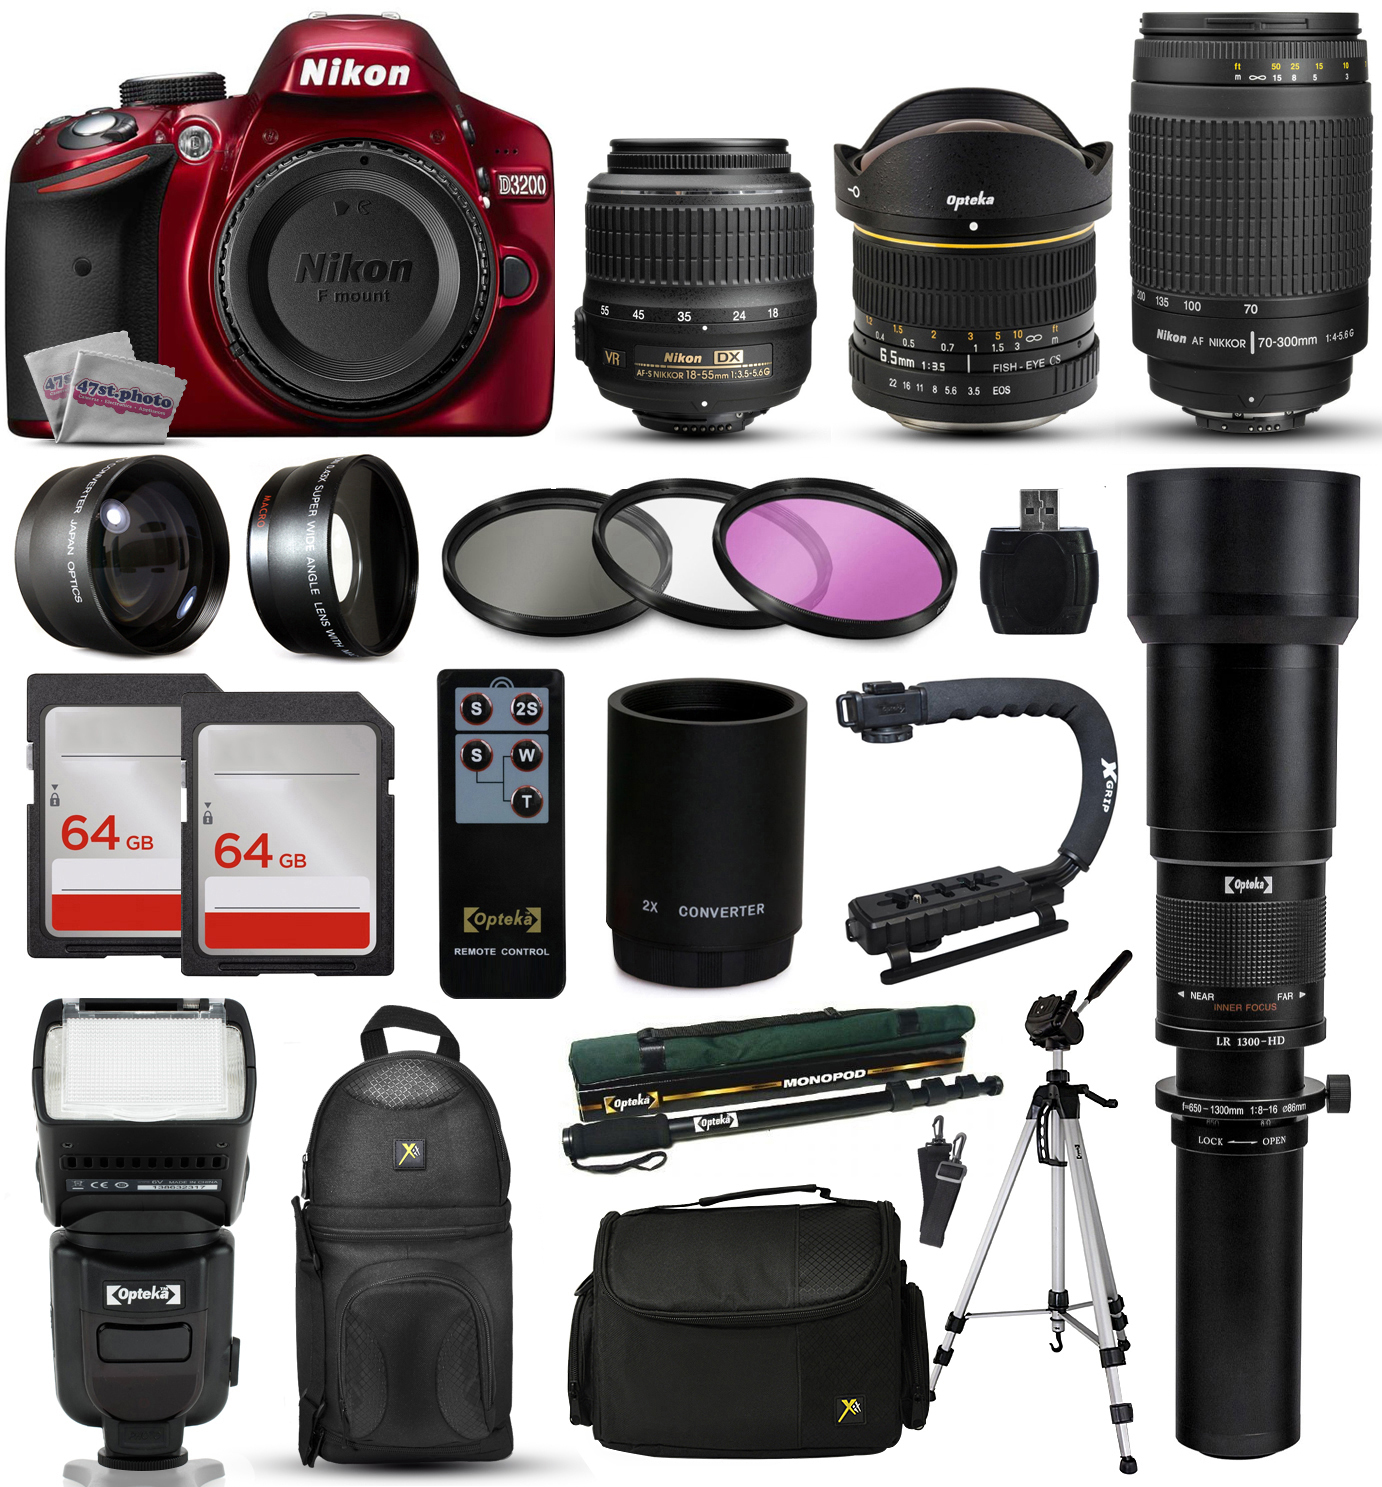 "Nikon D3200 Red DSLR Digital Camera + 18-55mm VR + 6.5mm Fisheye + 55-300mm VR + 650-2600mm Lens + Filters + 128GB Memory + Action Stabilizer + i-TTL Autofocus Flash + Backpack + Case + 70"" Tripod"